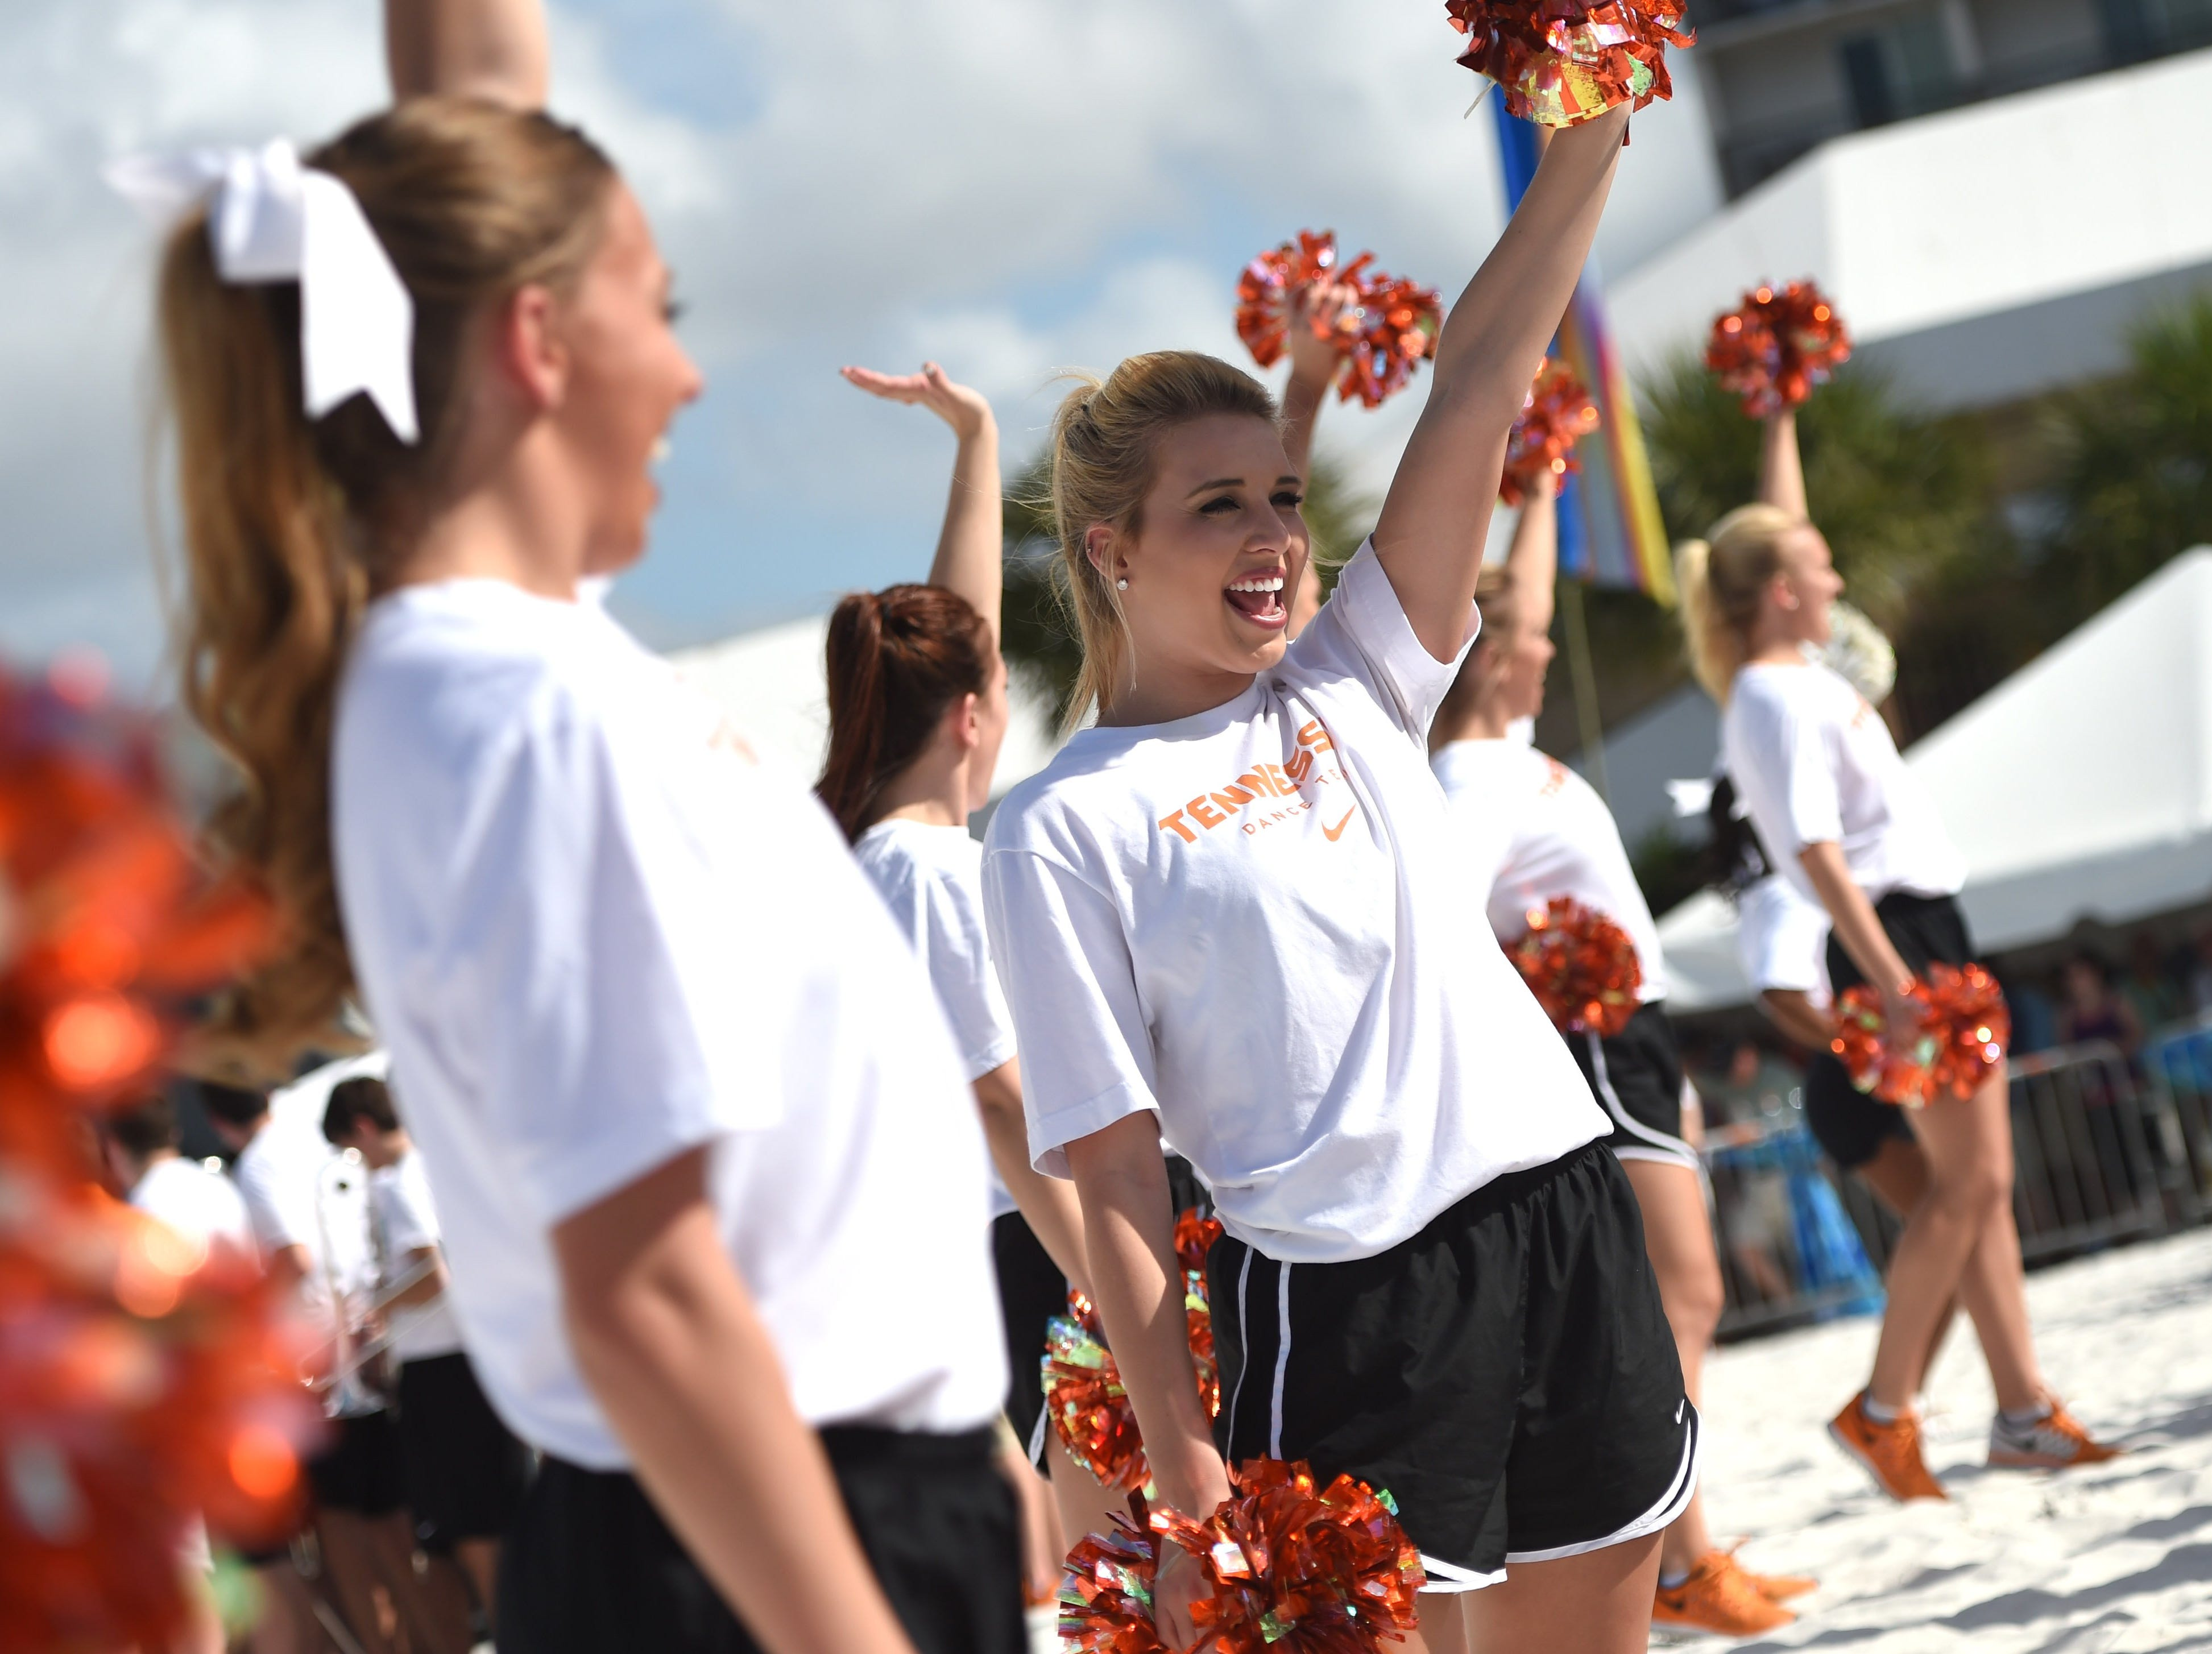 Tennessee cheerleaders wave to the crowd during Outback Bowl activities at Hilton Clearwater Beach in Clearwater, Fla. on Wednesday, Dec. 30, 2015.